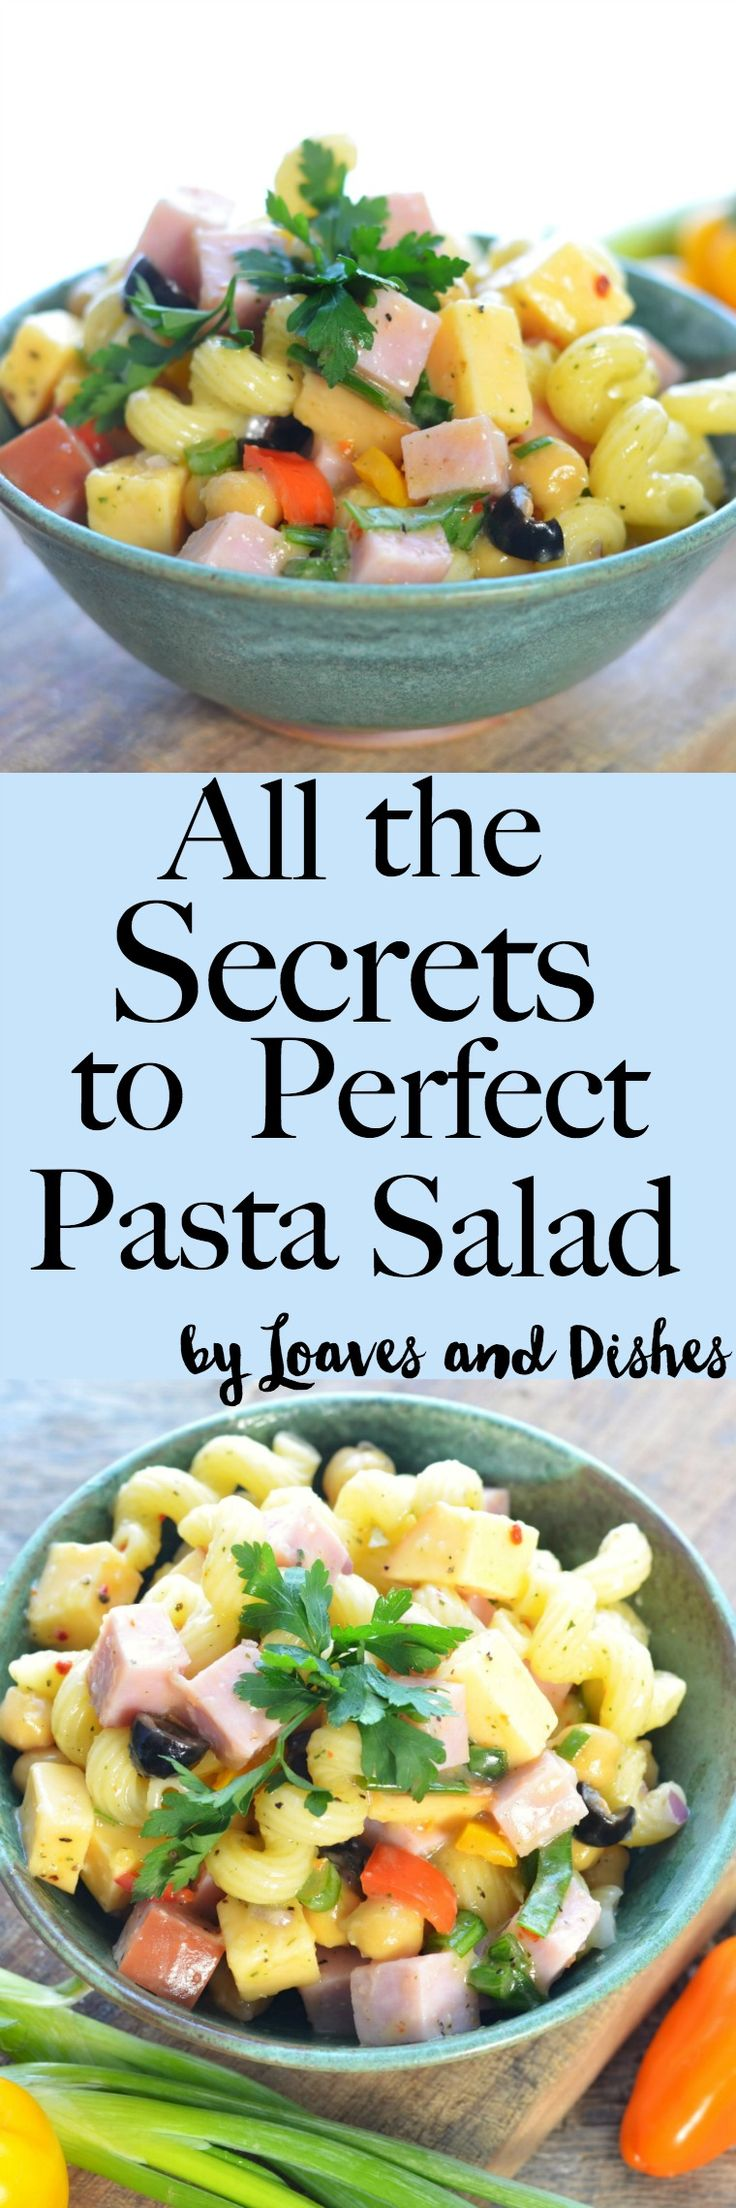 Easy Healthy Greek like Pasta Salad made with whatever you have or WANT!  Creamy, Ranch, Classic, cold, caprese or any summer pasta salad you can dream up. Try Mediterranean, mexican, vegan - they are all in your reach with this how to post.